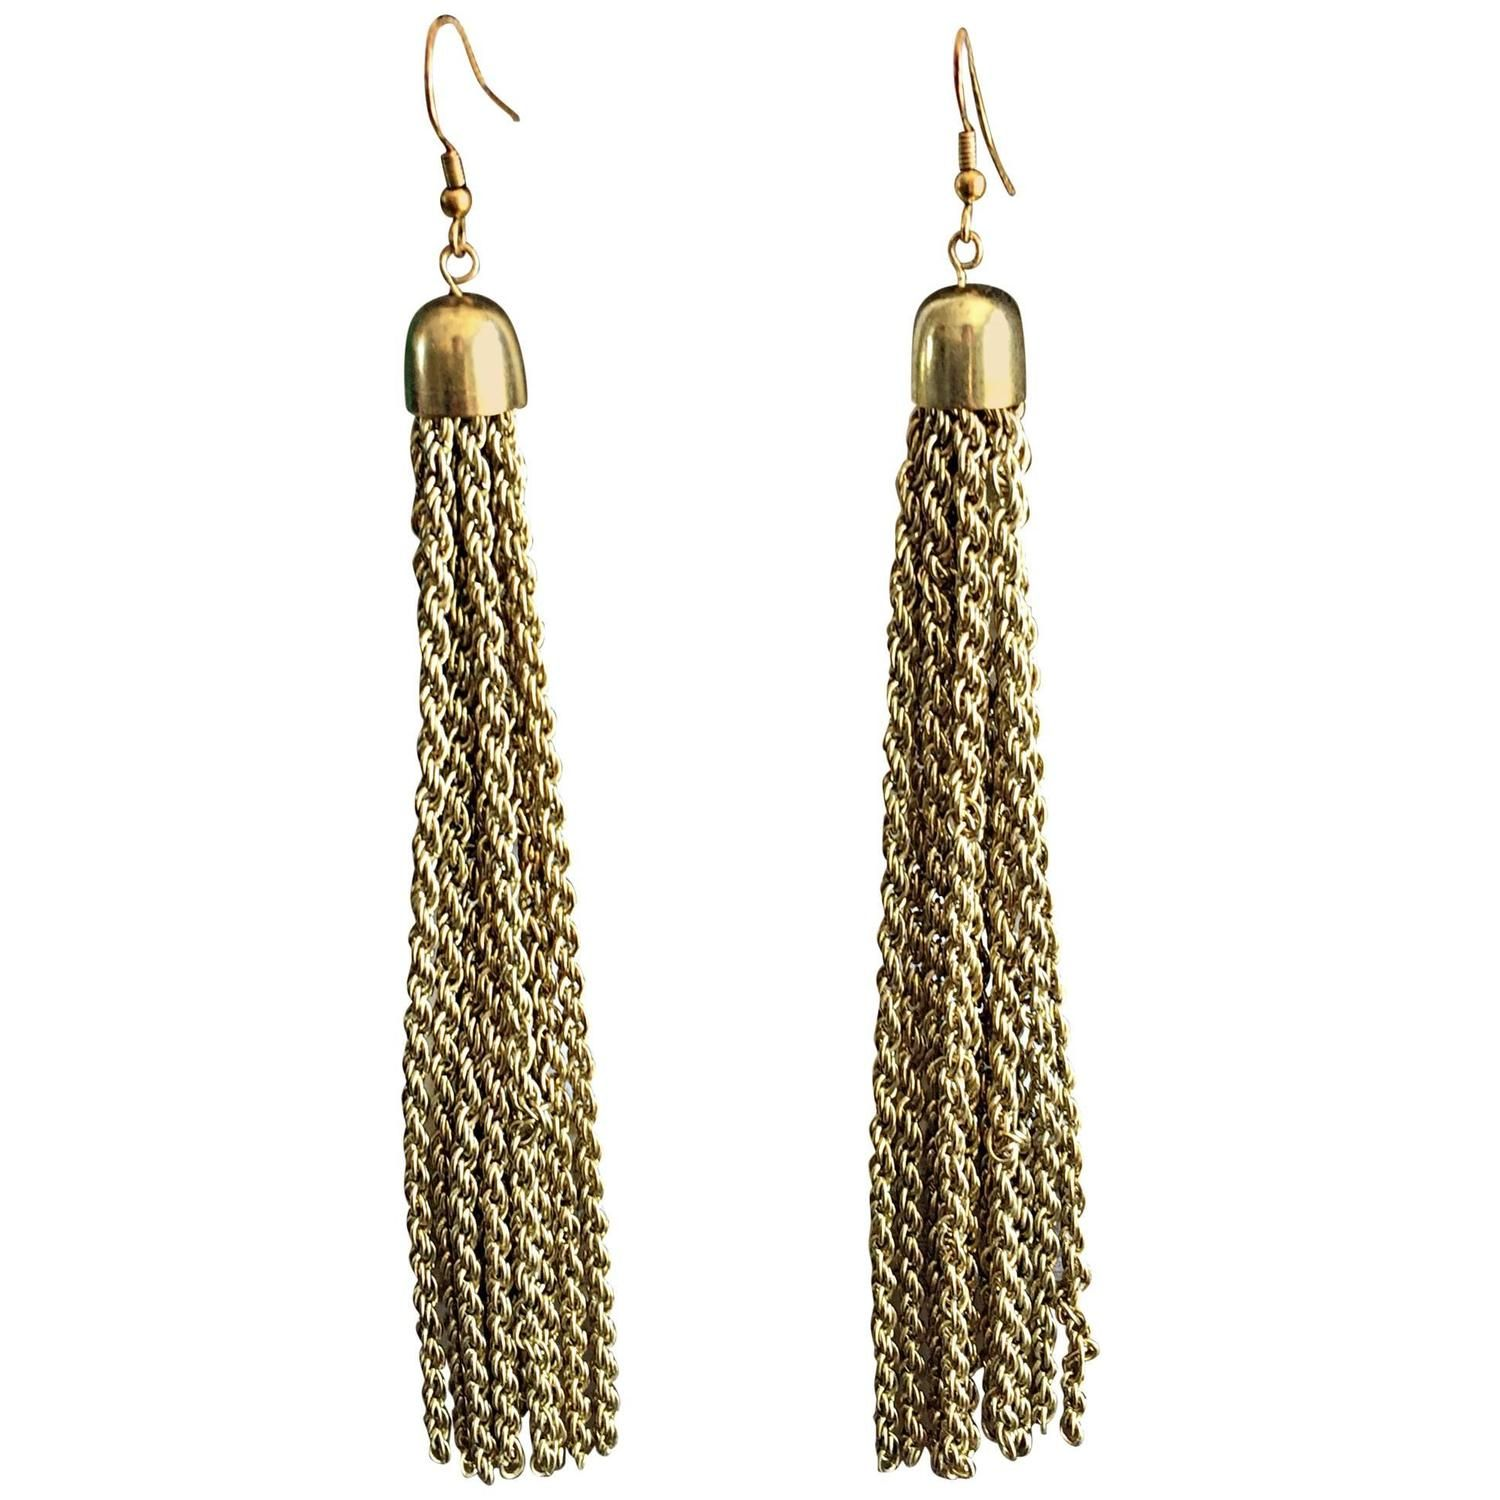 87414d076 1970s 70s Vintage Tassel Gold Brushed Brass Long Disco Chain Earrings |  From a unique collection